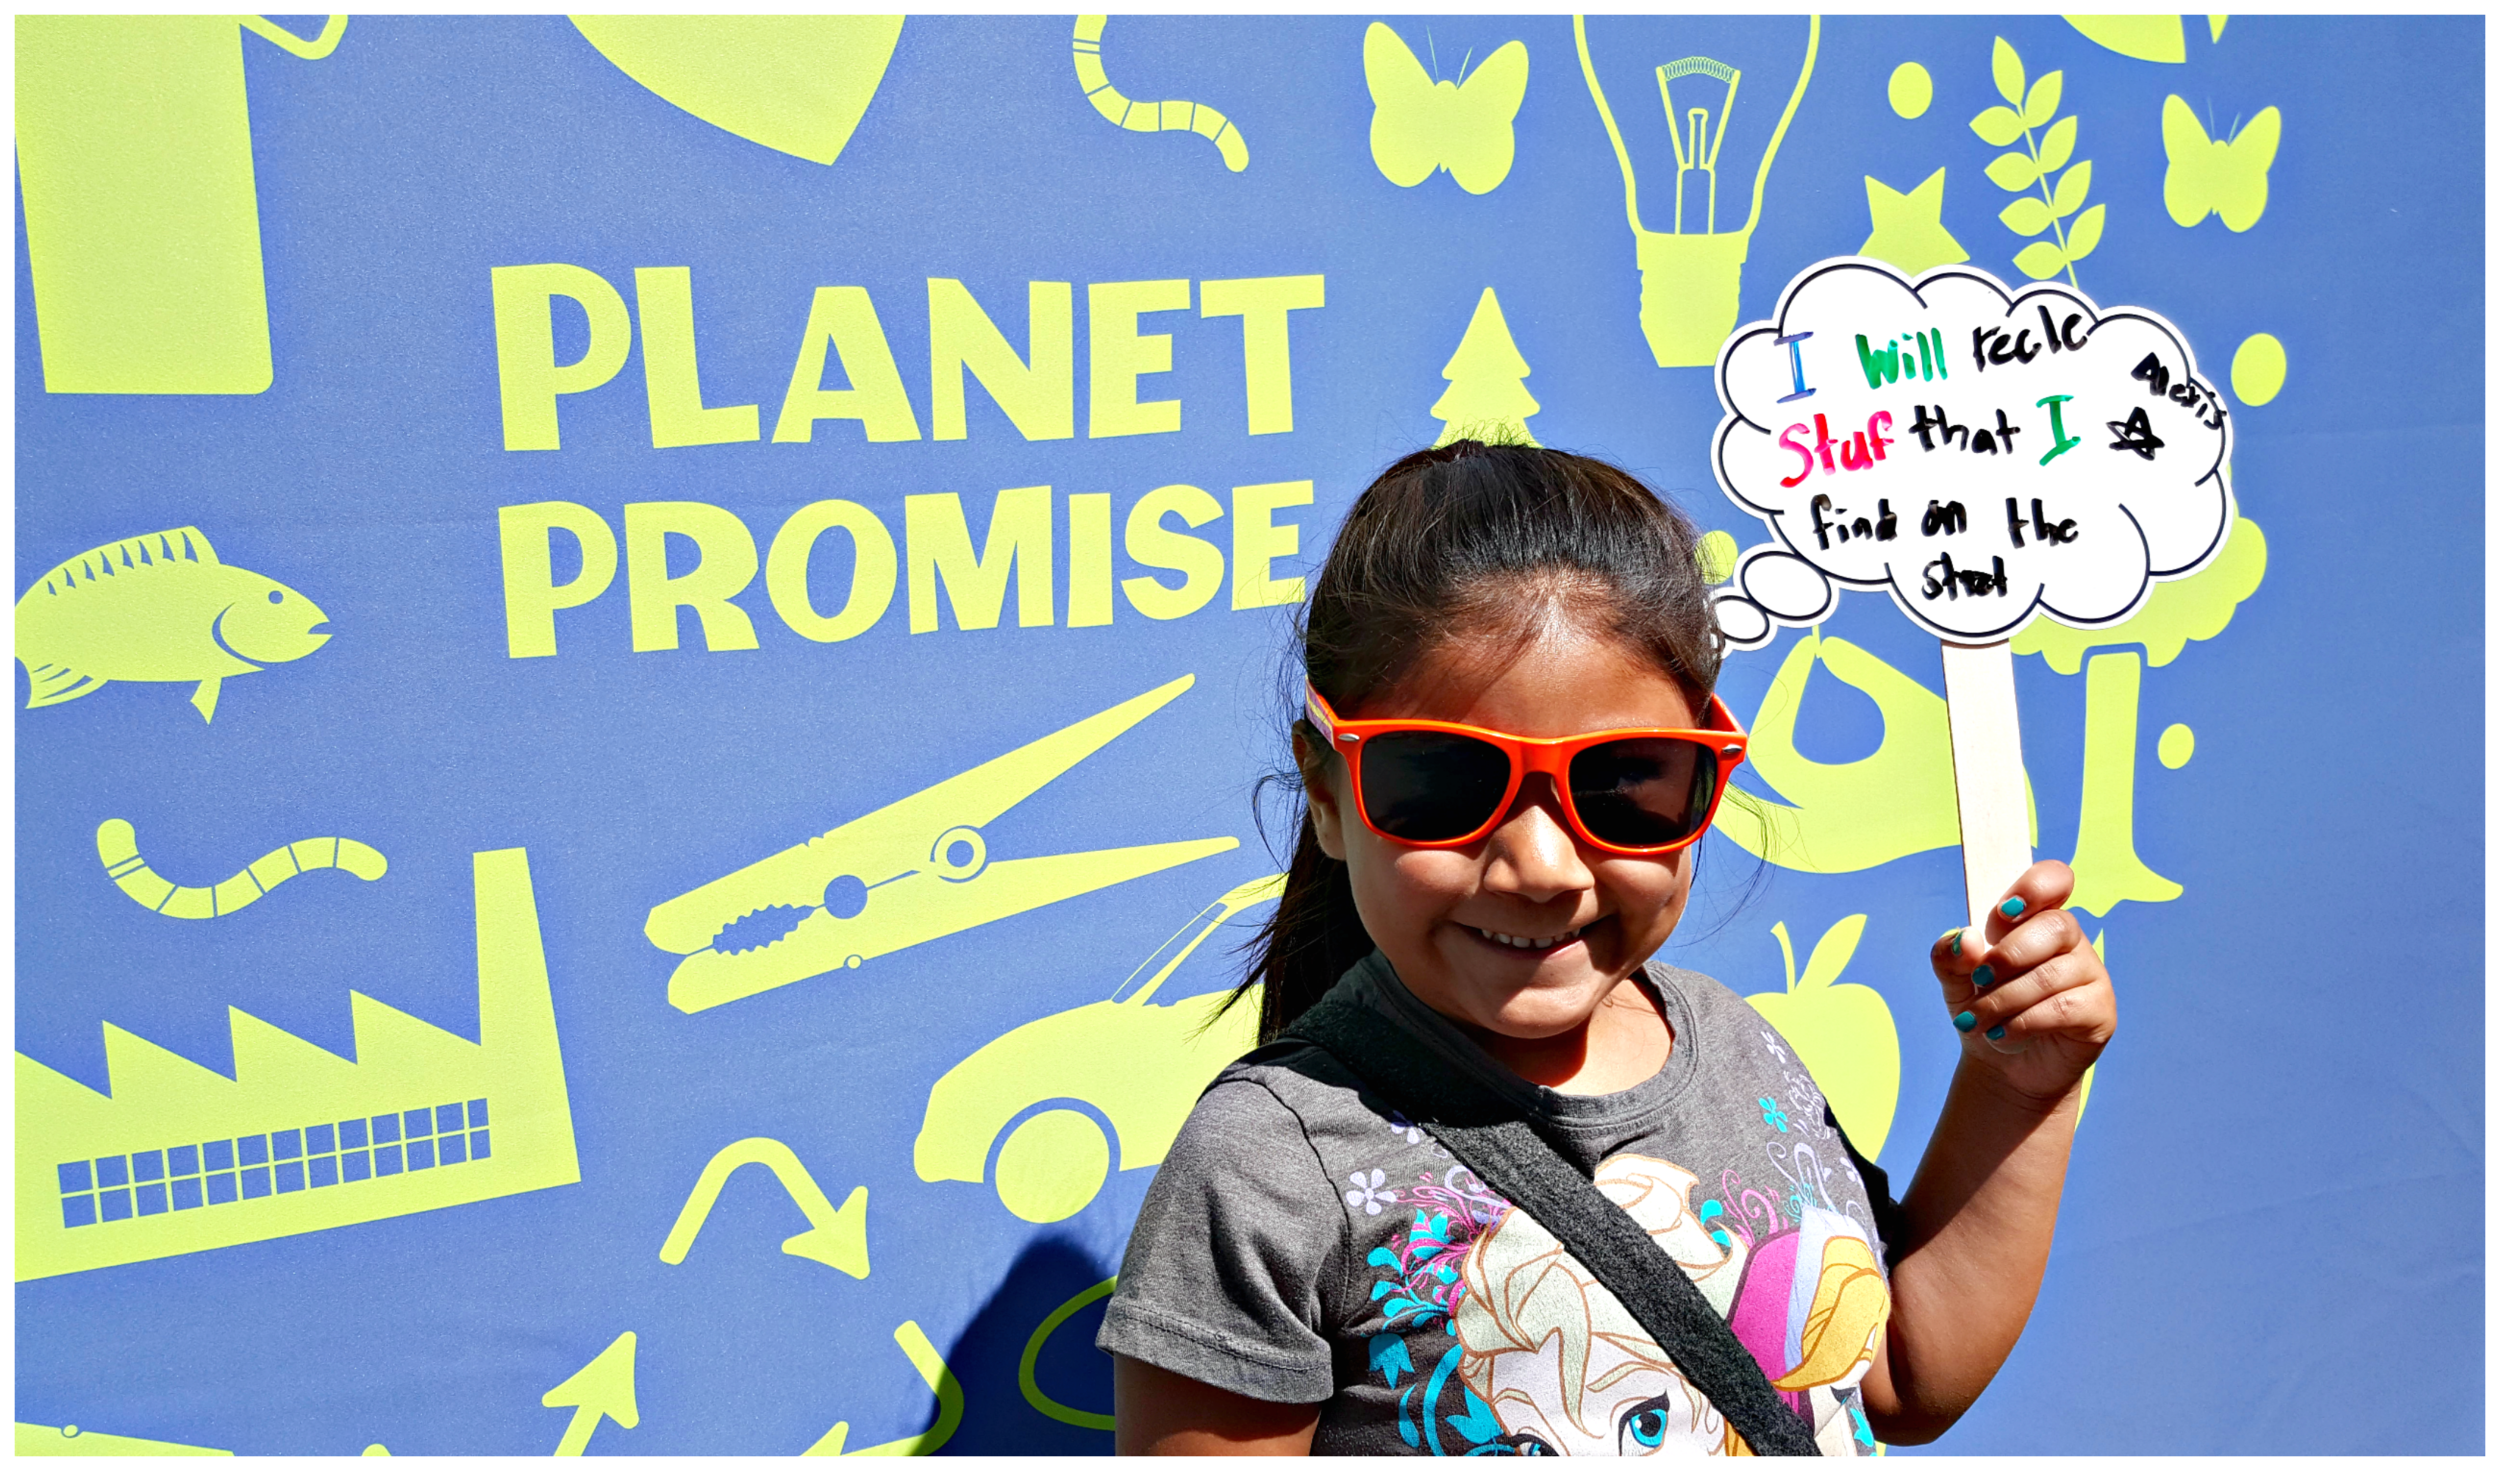 """""""I will recycle stuff that I find on the street""""   - Alexis, age 6. #LAZooPlanetPromise I know I could have technically corrected her spelling, but she'll learn eventually."""